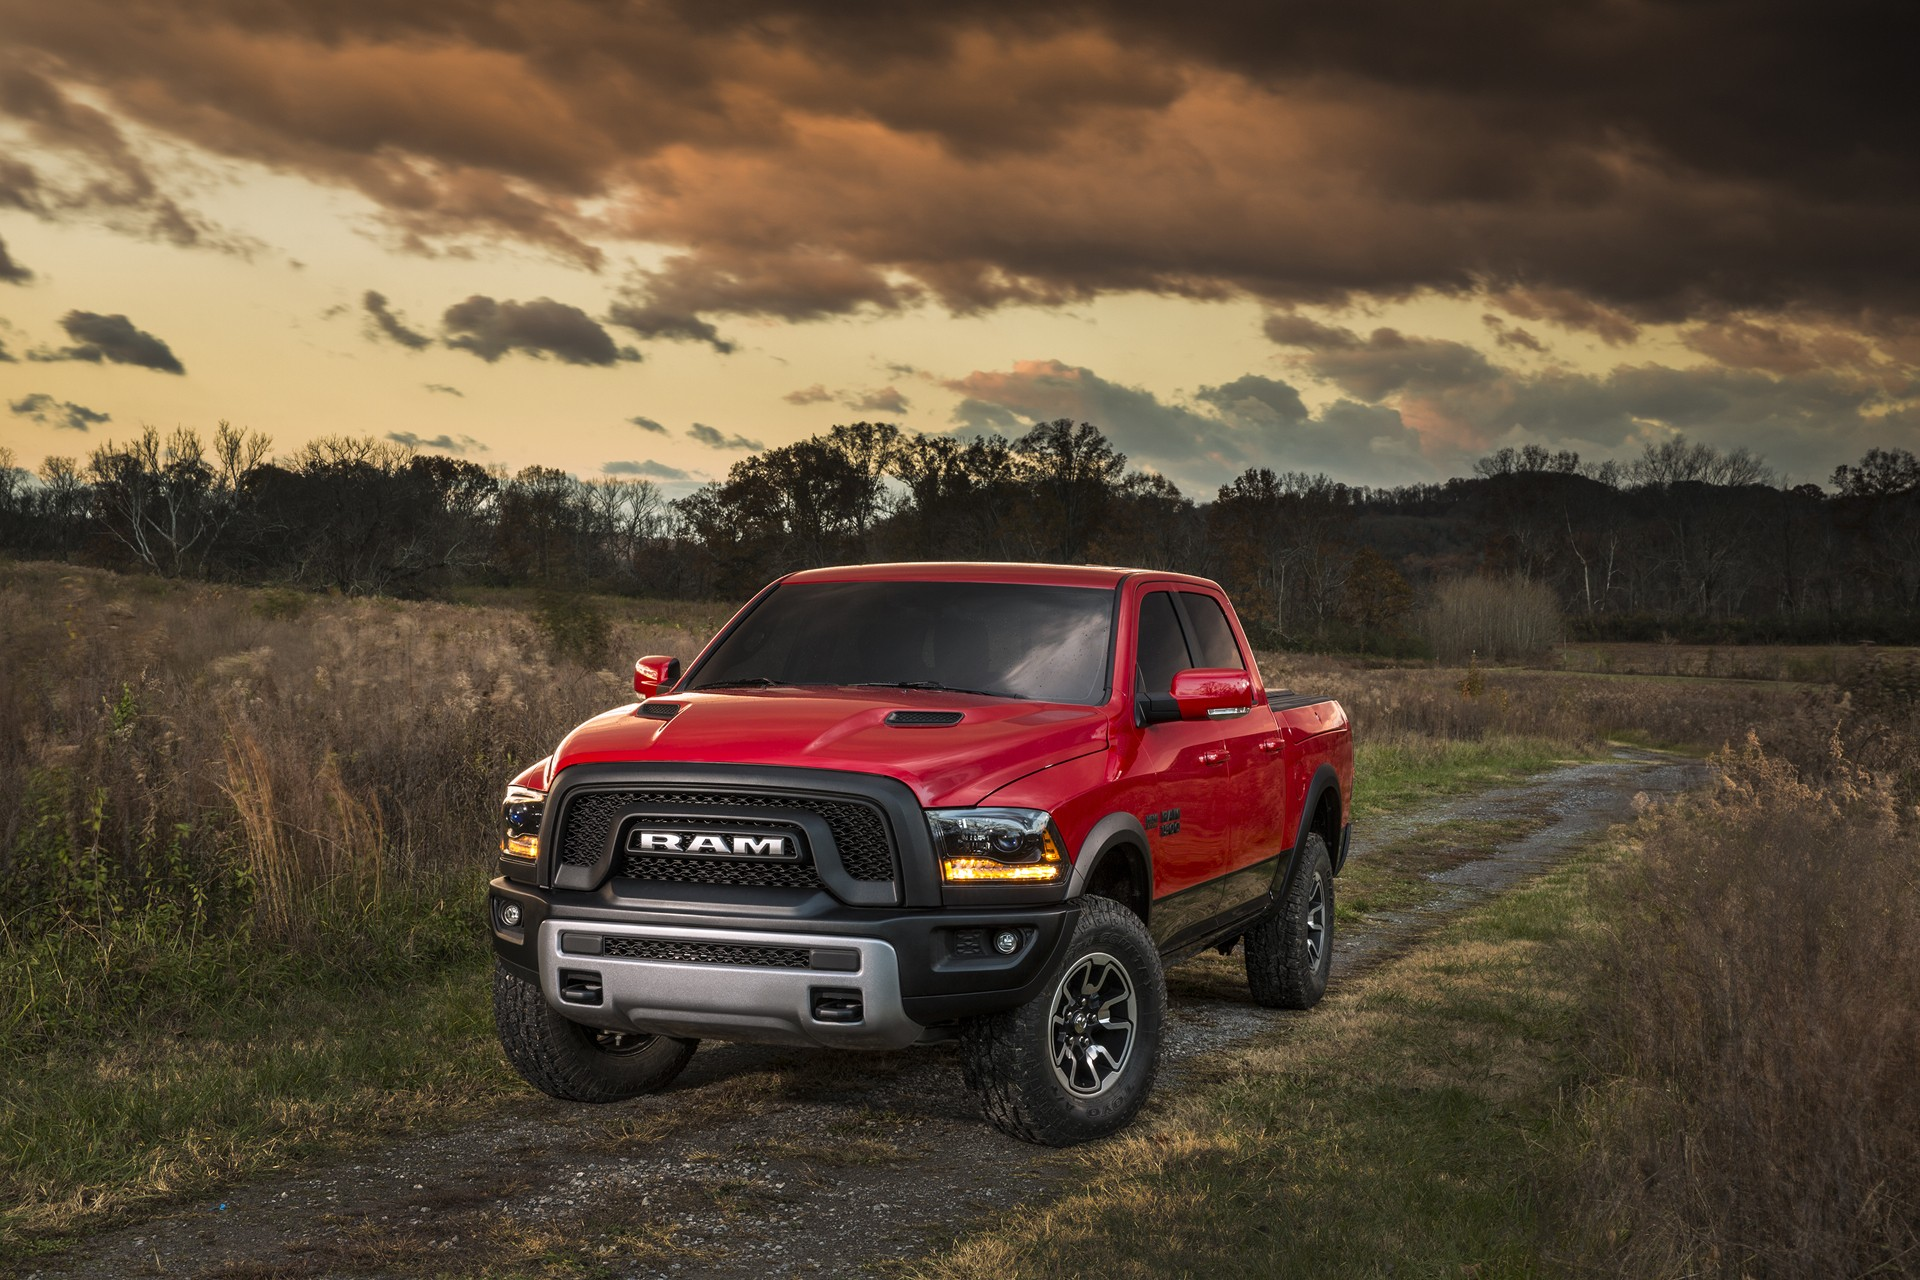 Ram 1500 Rebel Wasn T Inspired By The David Bowie Song